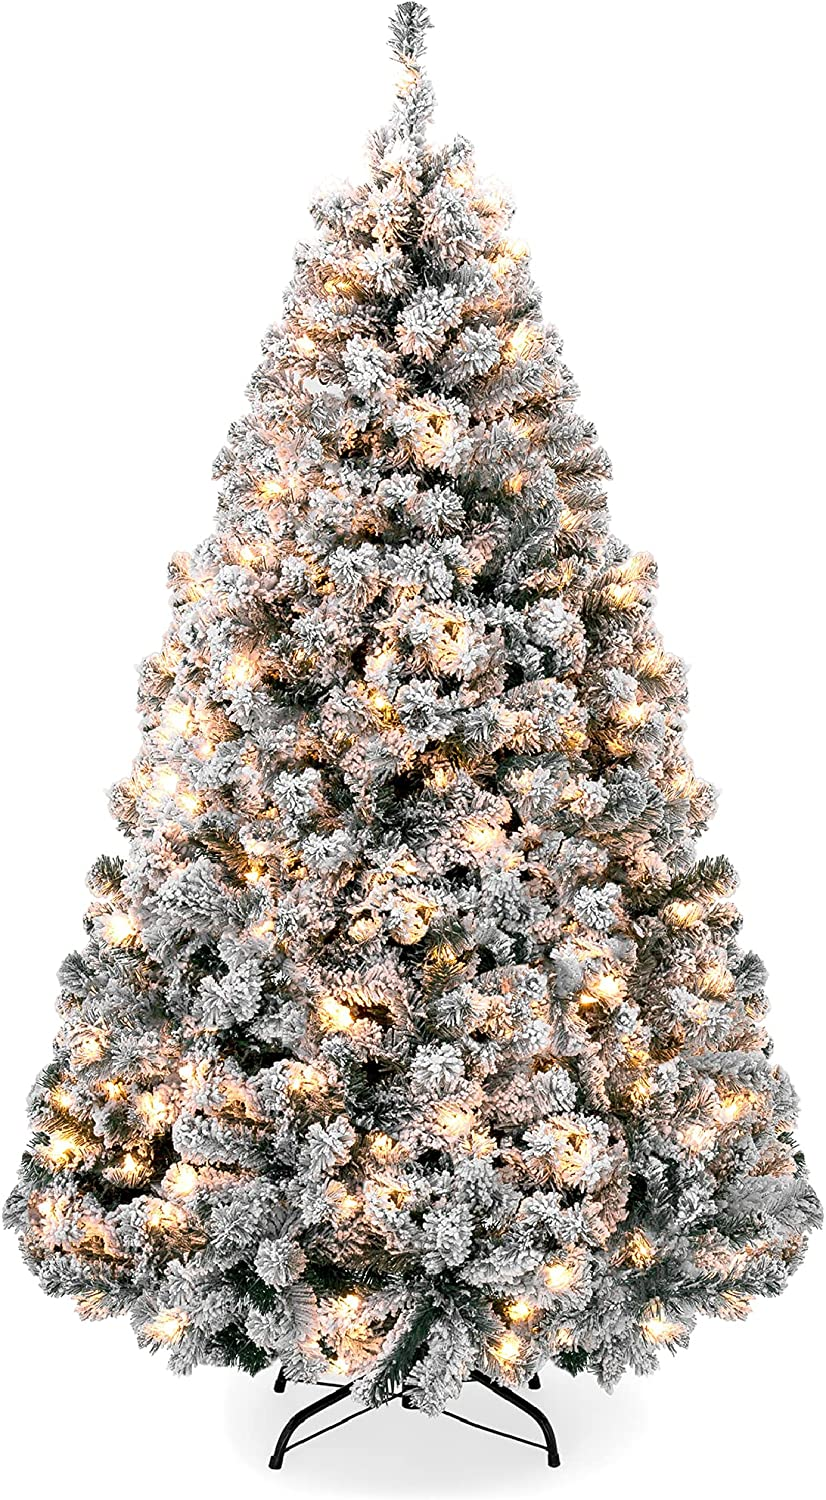 Flicked Christmas Tree Decorations 2021 Buy Best Choice Products 9ft Pre Lit Snow Flocked Artificial Christmas Pine Tree Holiday Decor W 900 Warm White Lights Online At Low Prices In India Amazon In